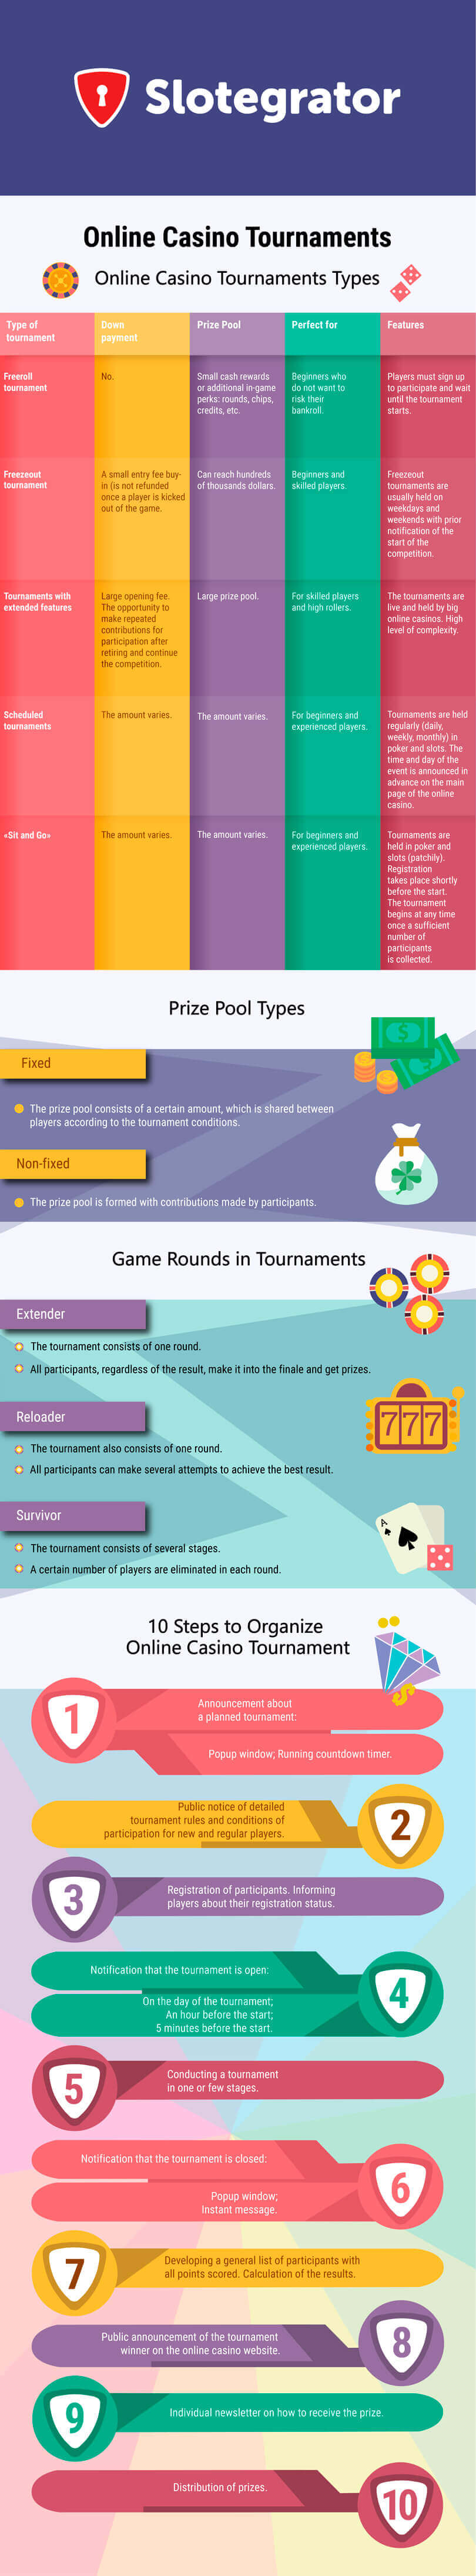 Online casino tournaments - infographics by Slotegrator